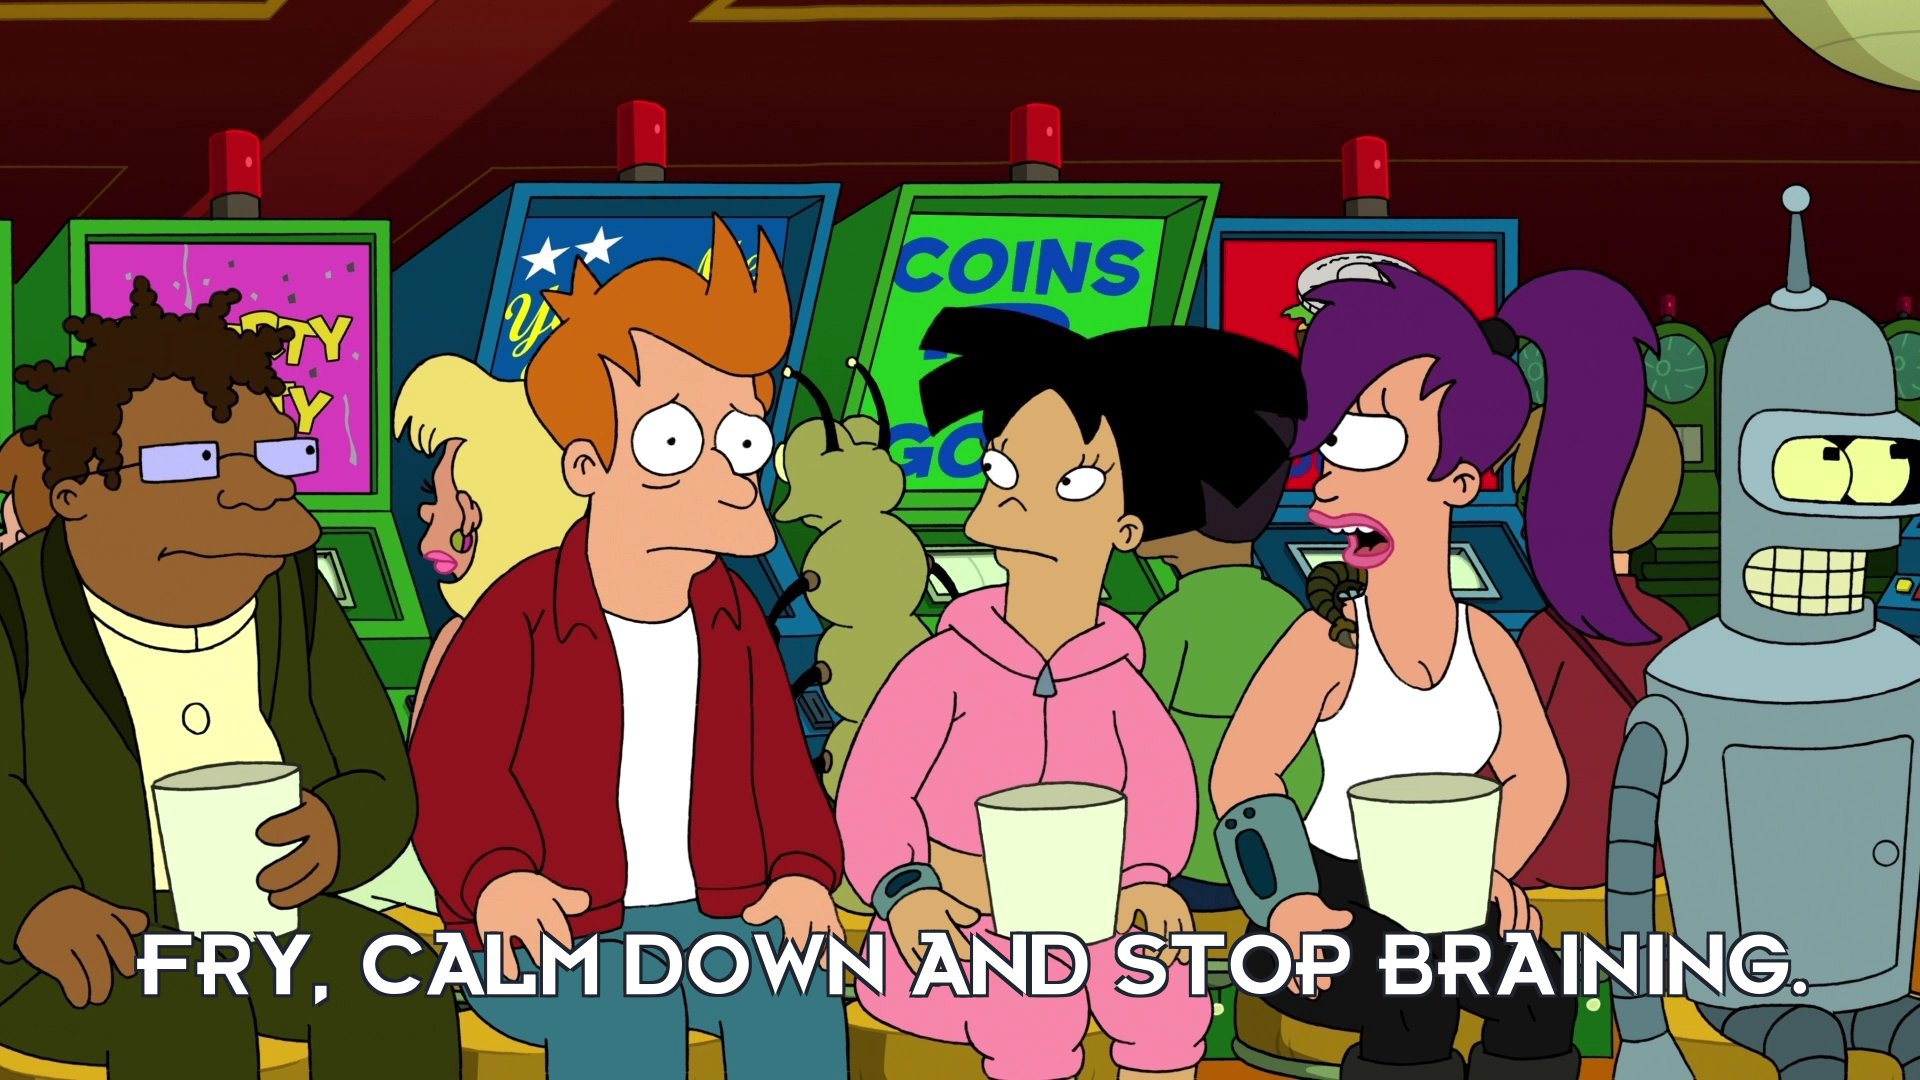 Turanga Leela: Fry, calm down and stop braining.